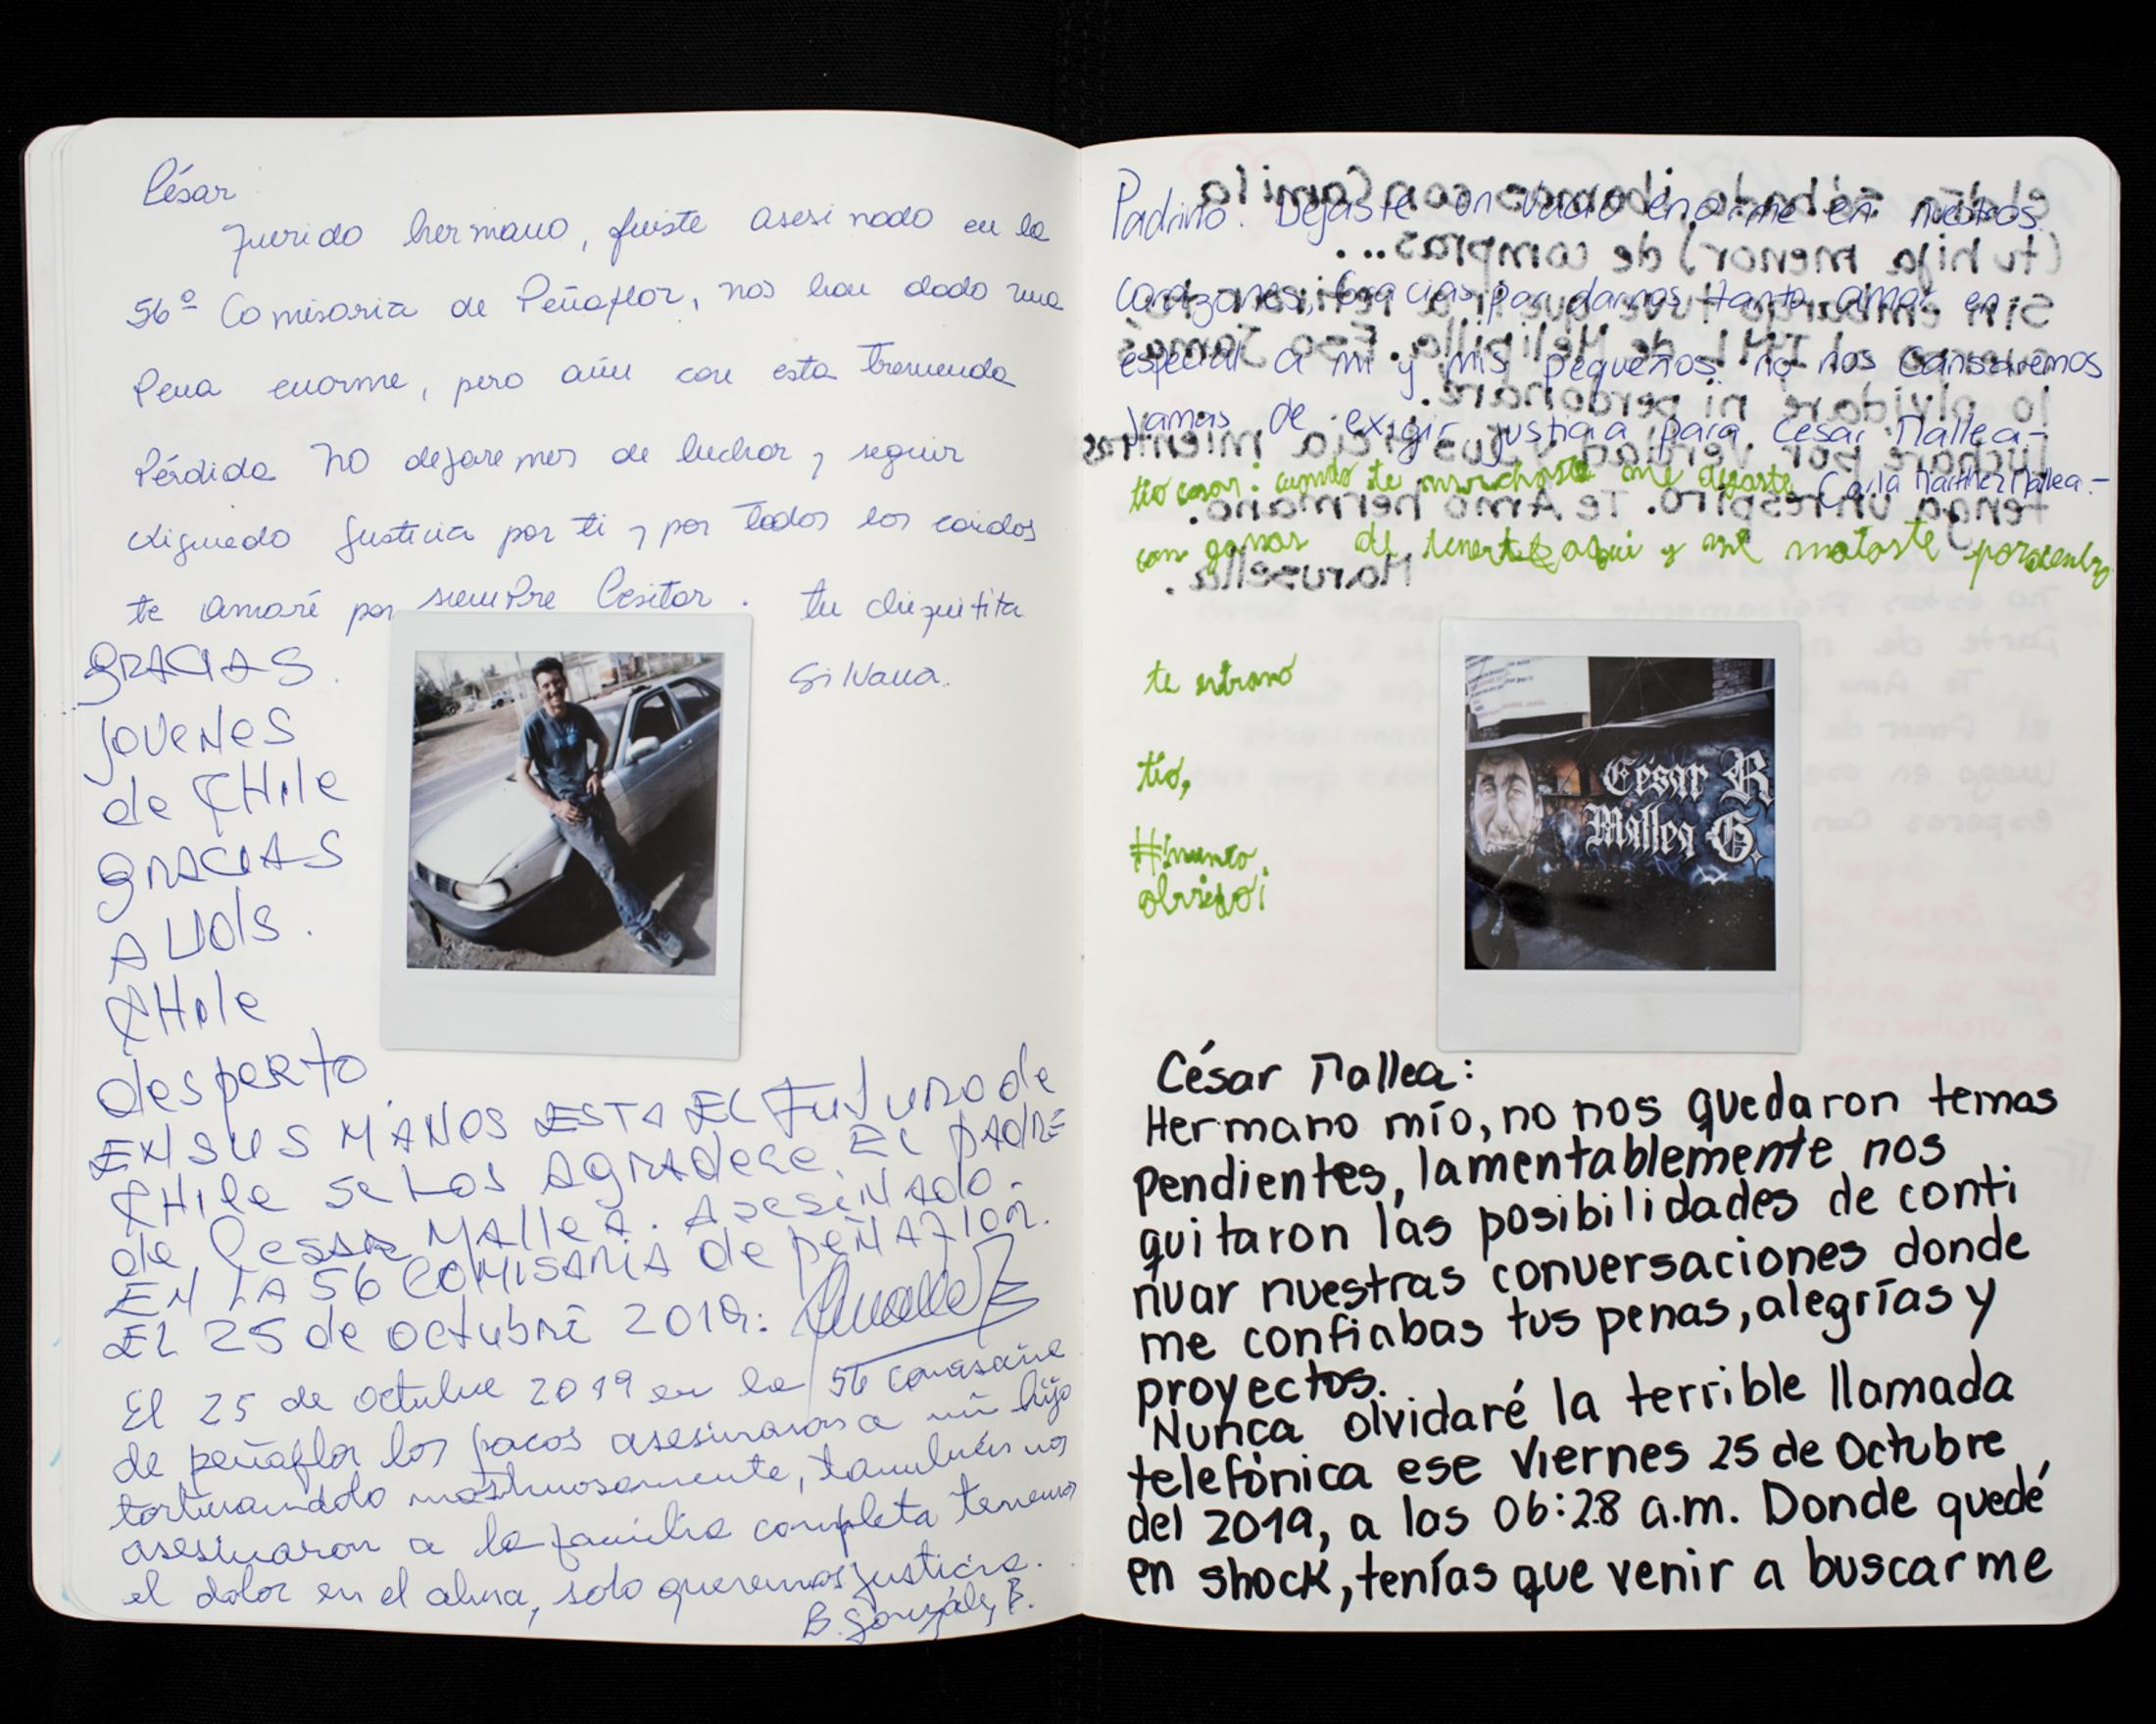 A family letter to the memory of César Mallea, and his site of death, a police station in Peñaflor, Chile. César Mallea's death took place on the night of October 25, 2019, when he was stopped during the first days of curfew while driving back home in his car. A few hours after he was detained and forced to spend the night at the station, cops found César's body hanging in his cell by a piece of blanket. Further investigations revealed that the station's security cameras had stopped working that night. After cops delivered Cesar's body to his family, they found multiple bruises and wounds and believed that his death was beating and covered up as a suicide.